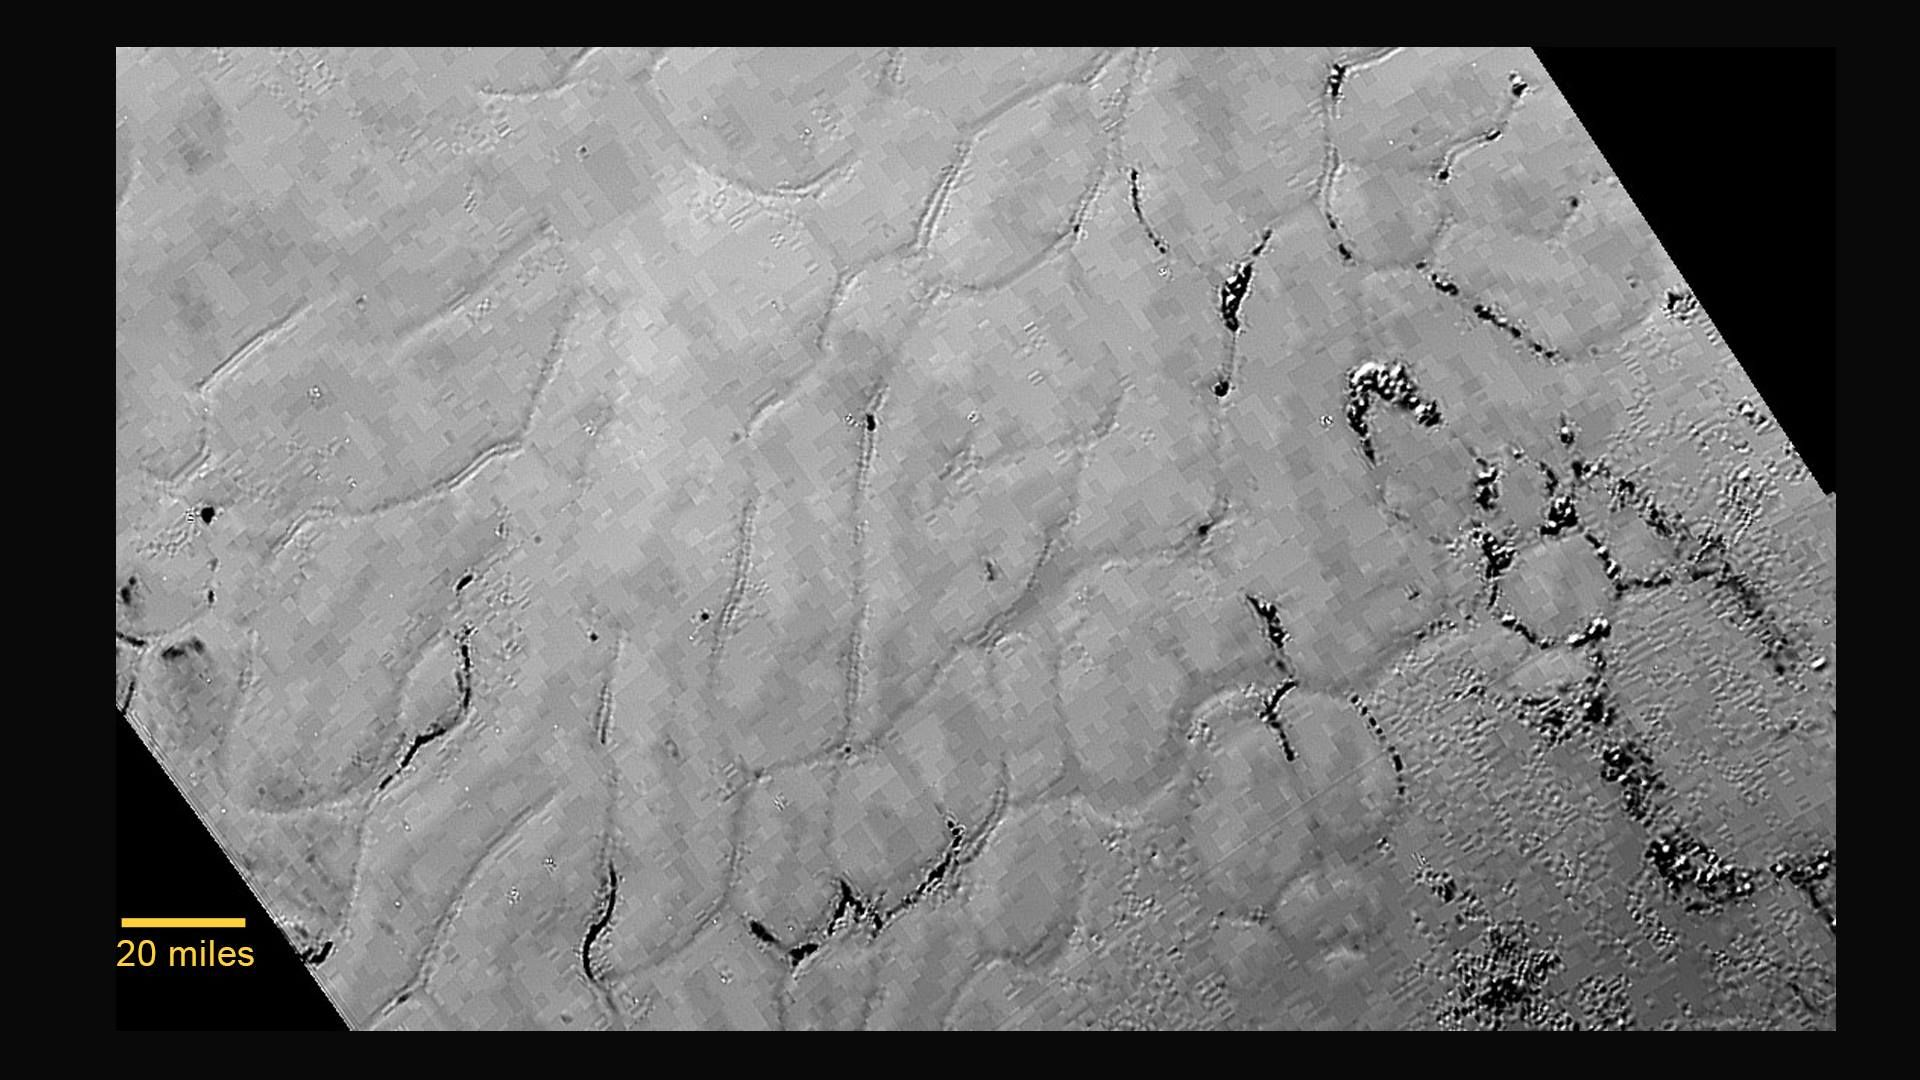 Frozen plains in the heart of Pluto's 'heart' discovered by New Horizons spacecraft! A new close-up image of Pluto reveals a vast, craterless plain that appears to be no more than 100 million years old, and is possibly still being shaped by geologic processes. This frozen region is north of Pluto's icy mountains, in the center-left of the heart feature.